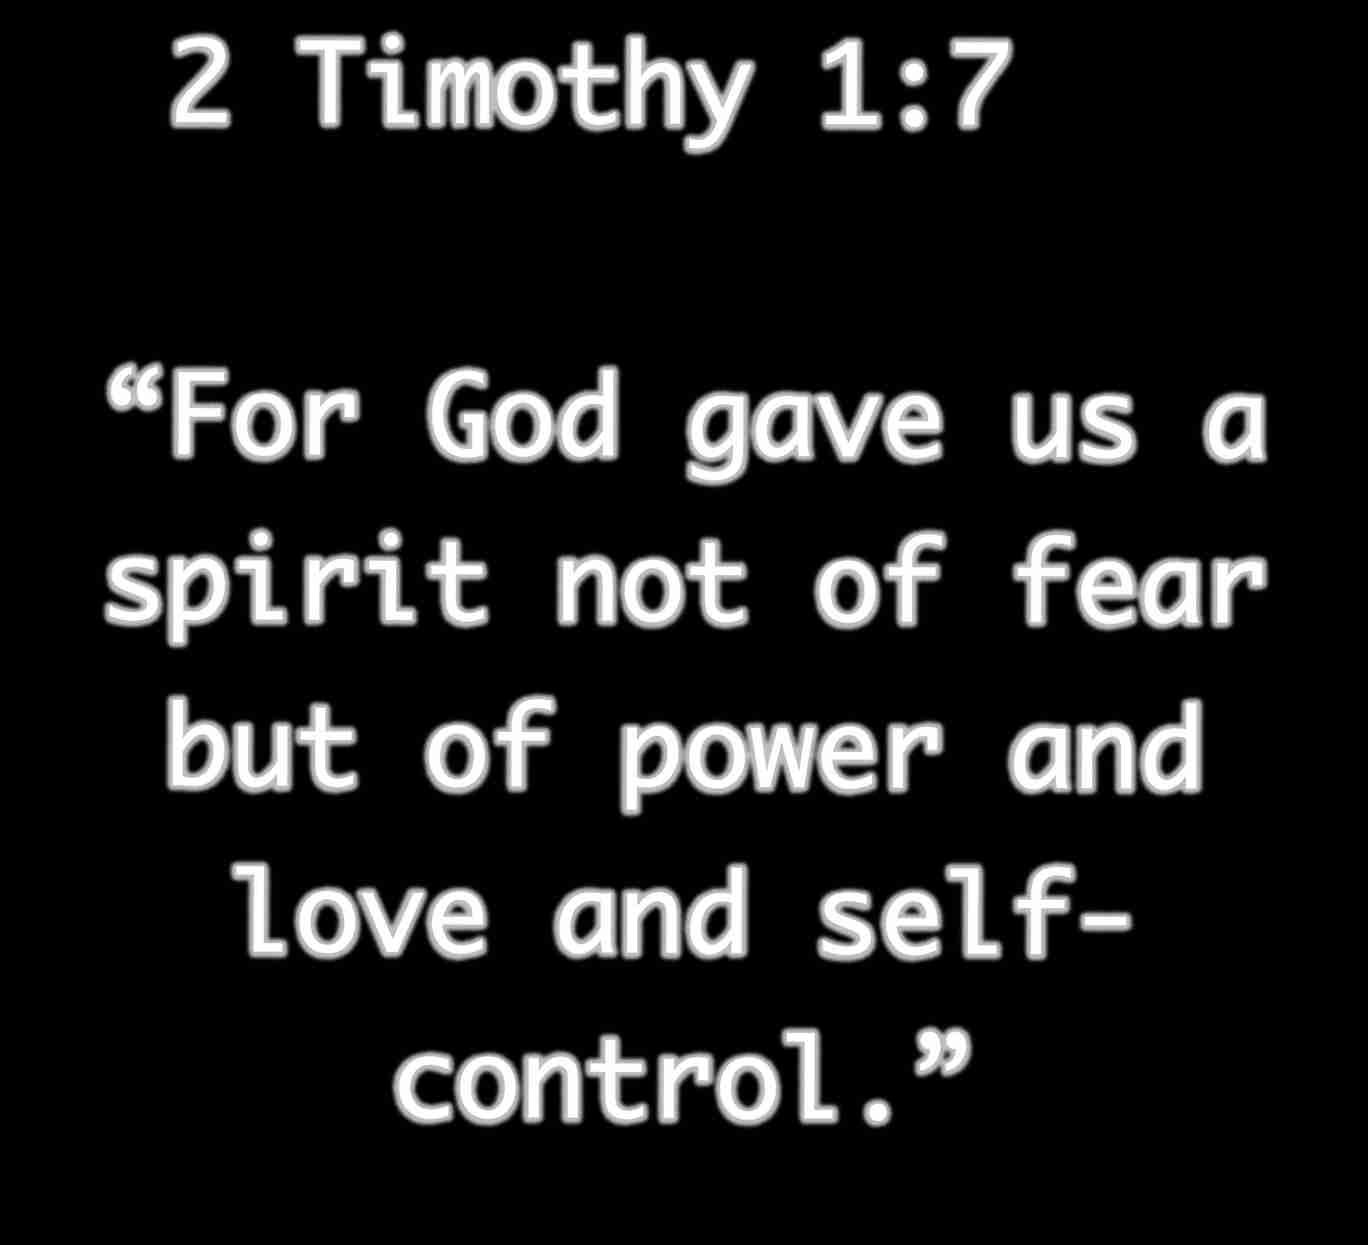 Inspirational Bible Quotes About Strength  Timothy  For God Gave